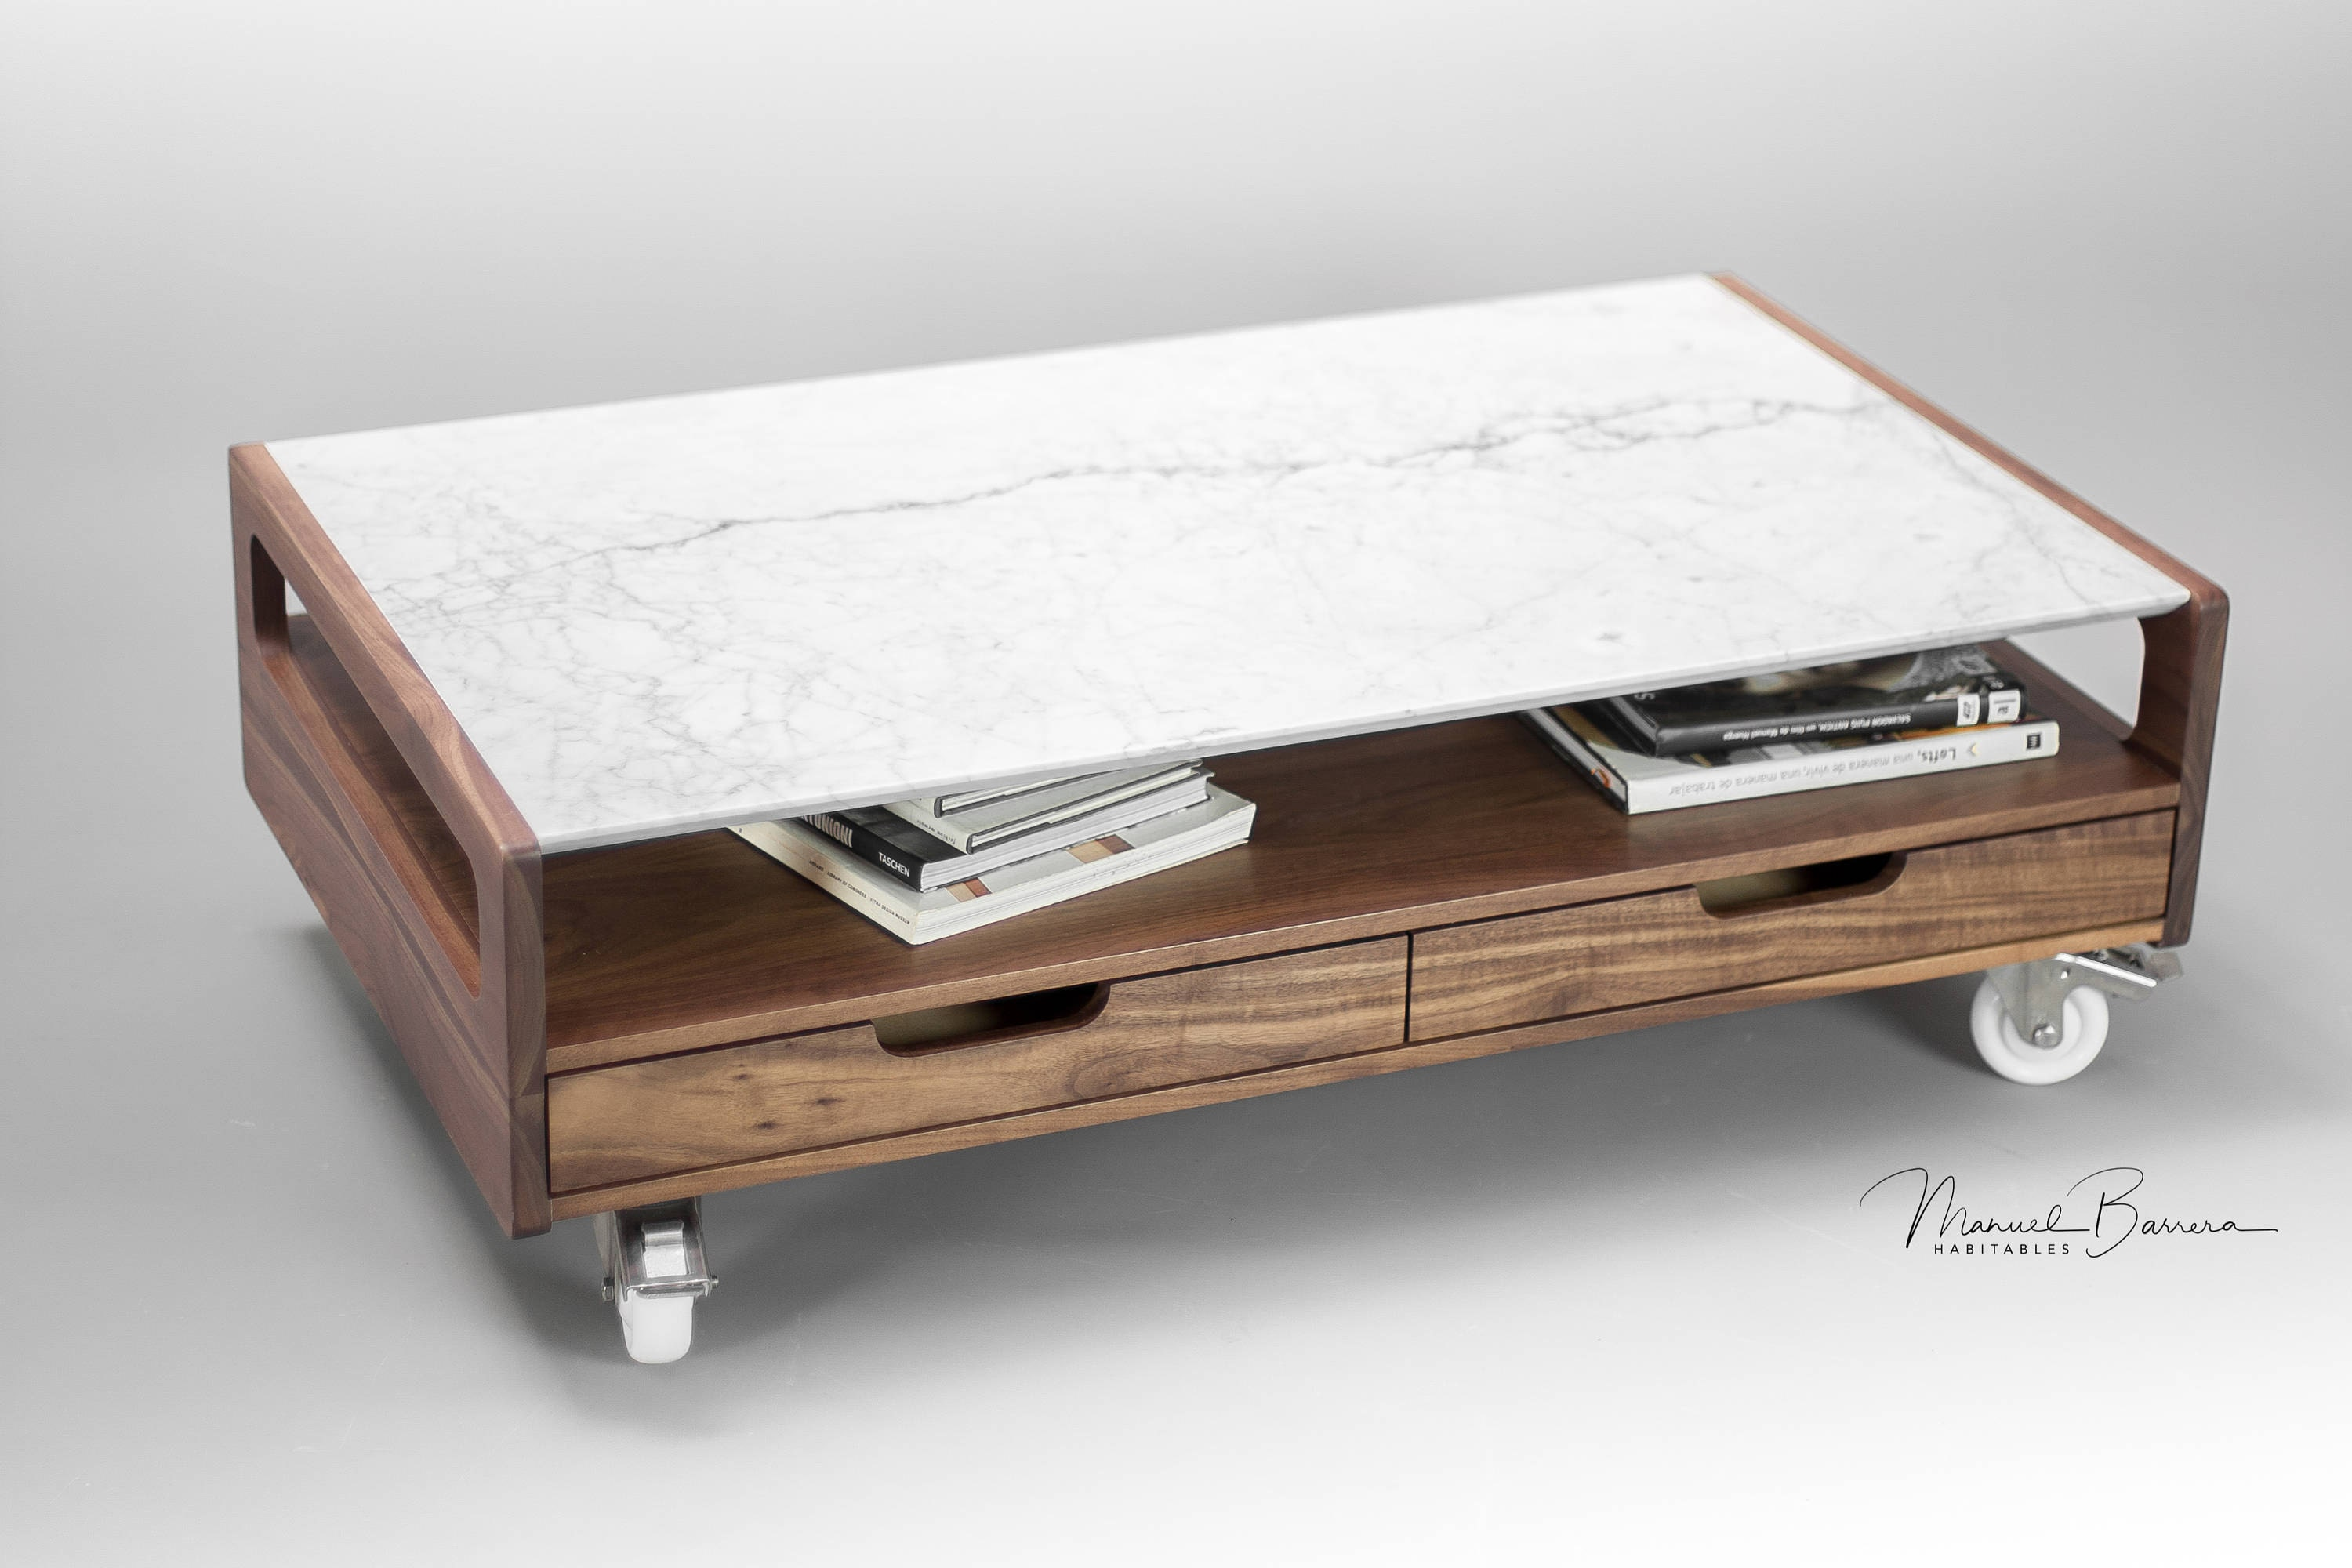 Marble Coffee table, center table , living room table made of solid ...